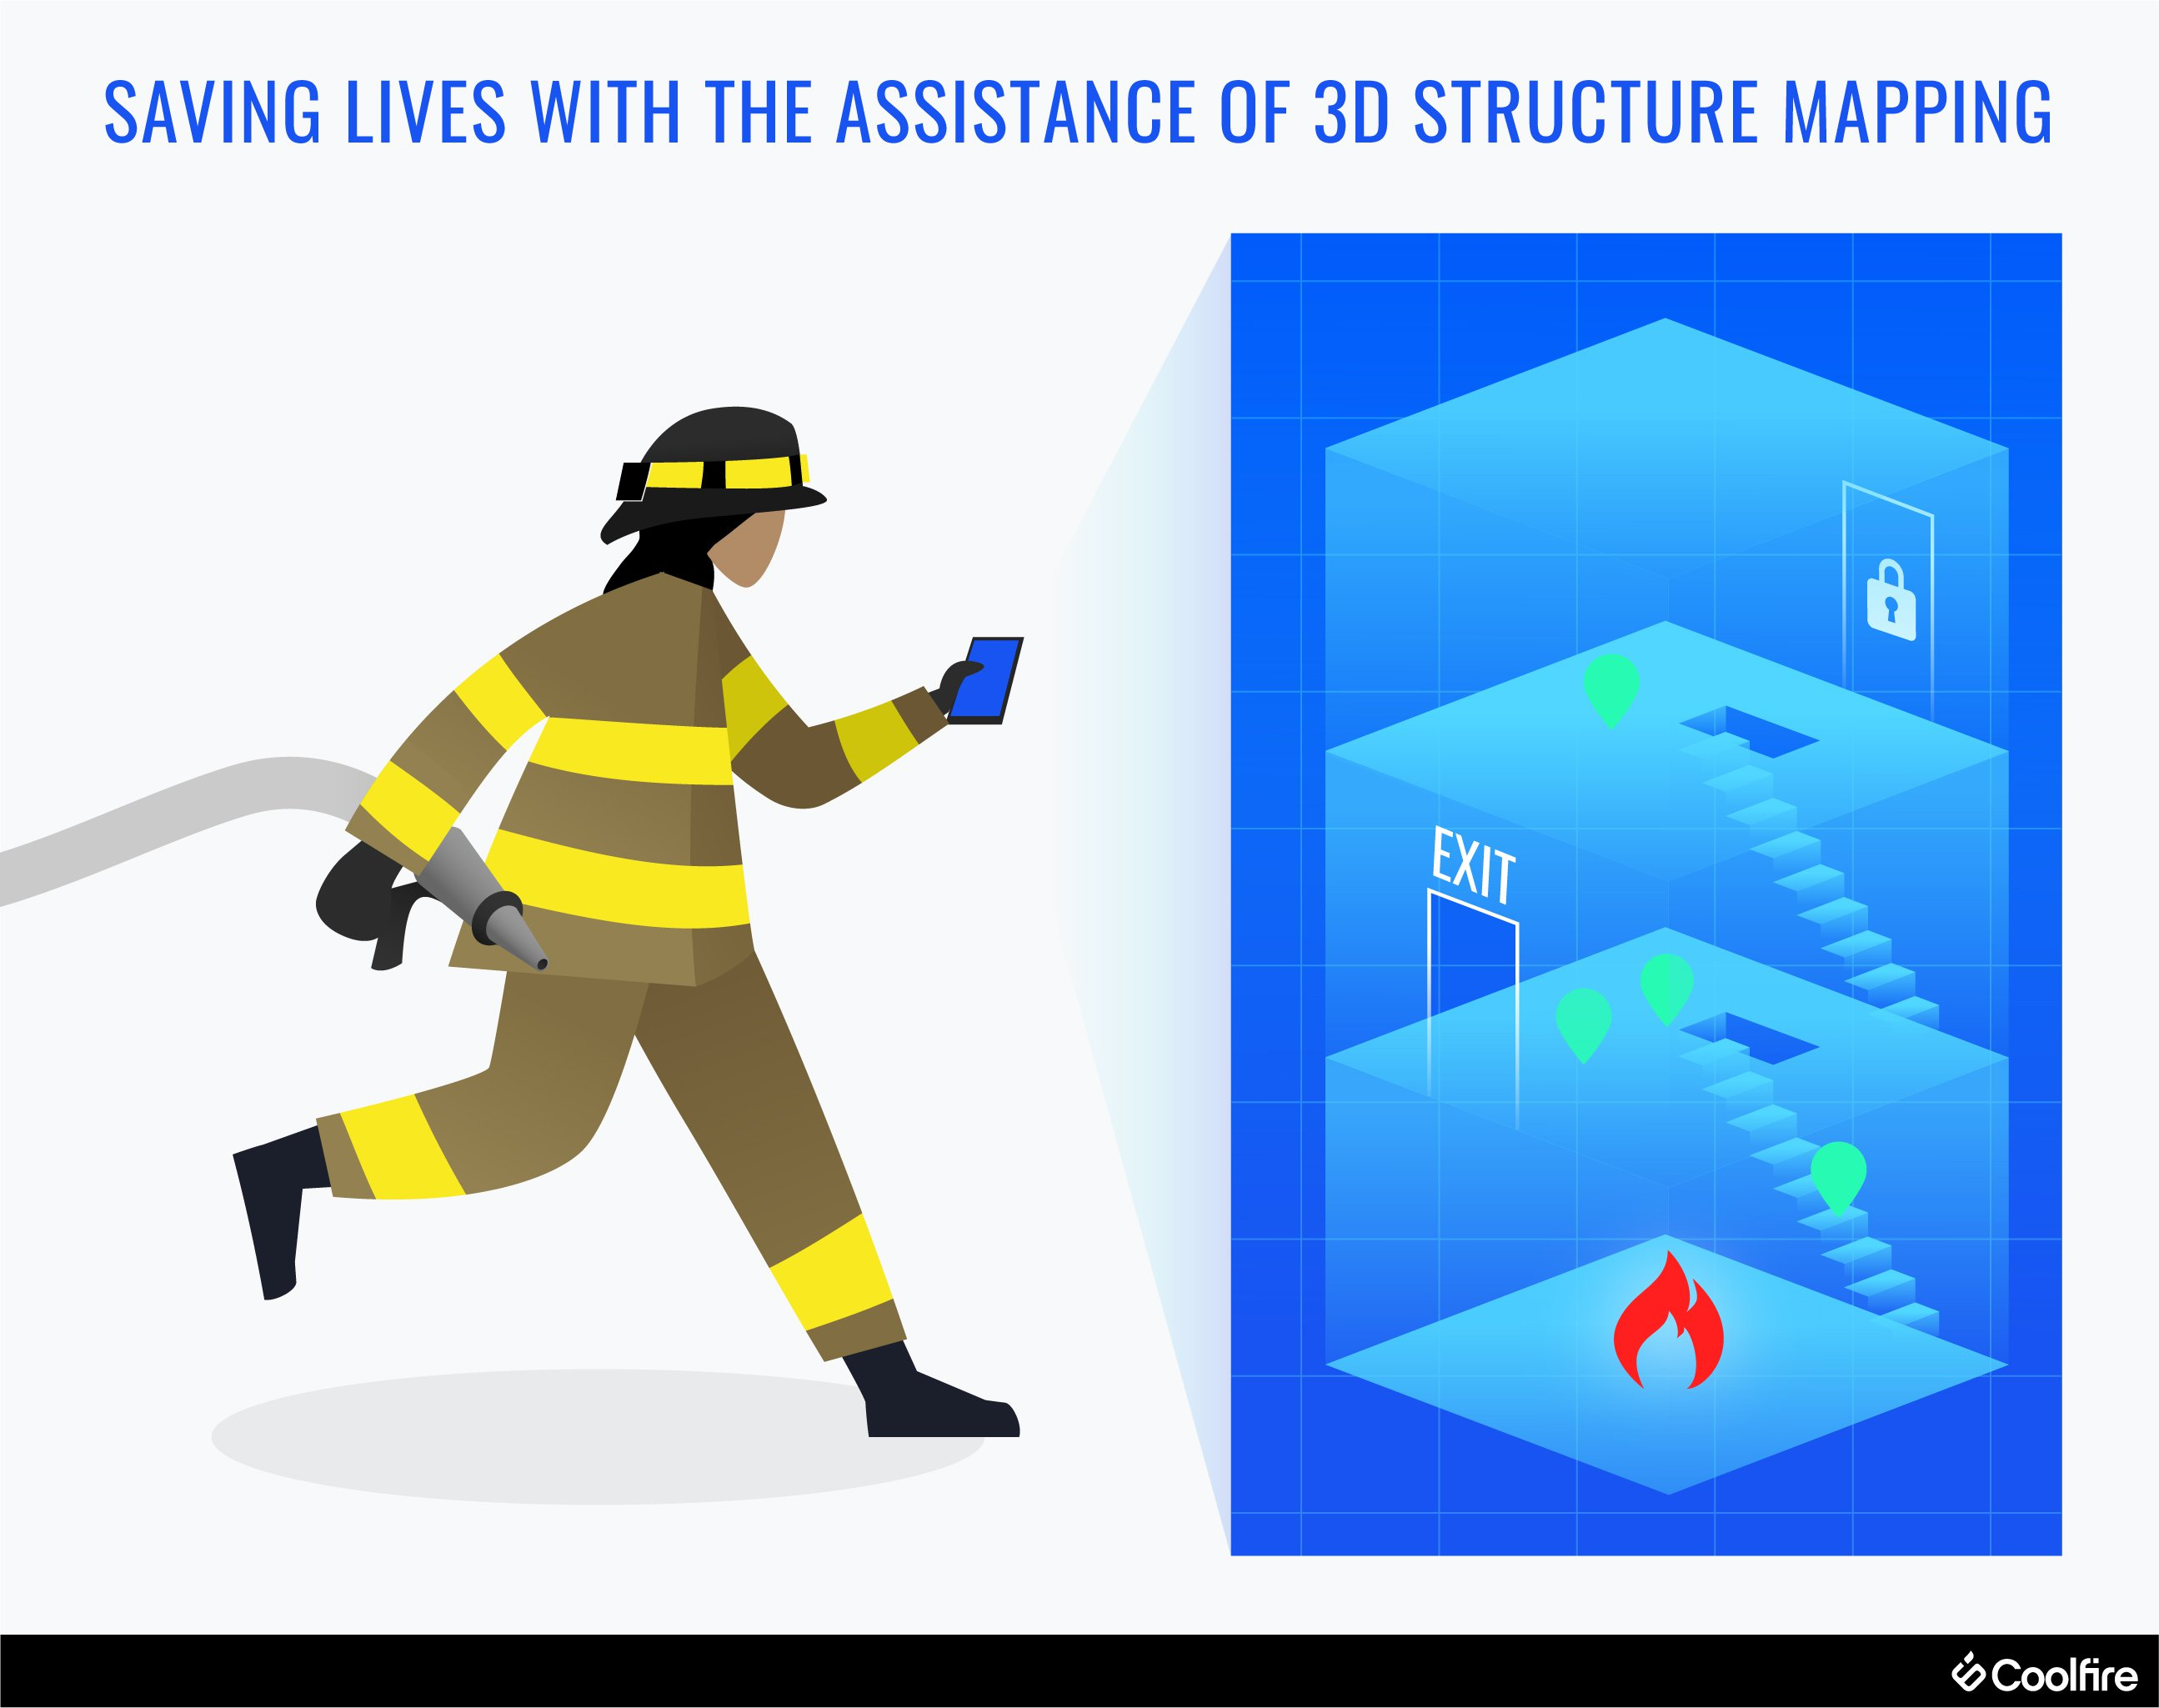 First responders save lives with 3d models